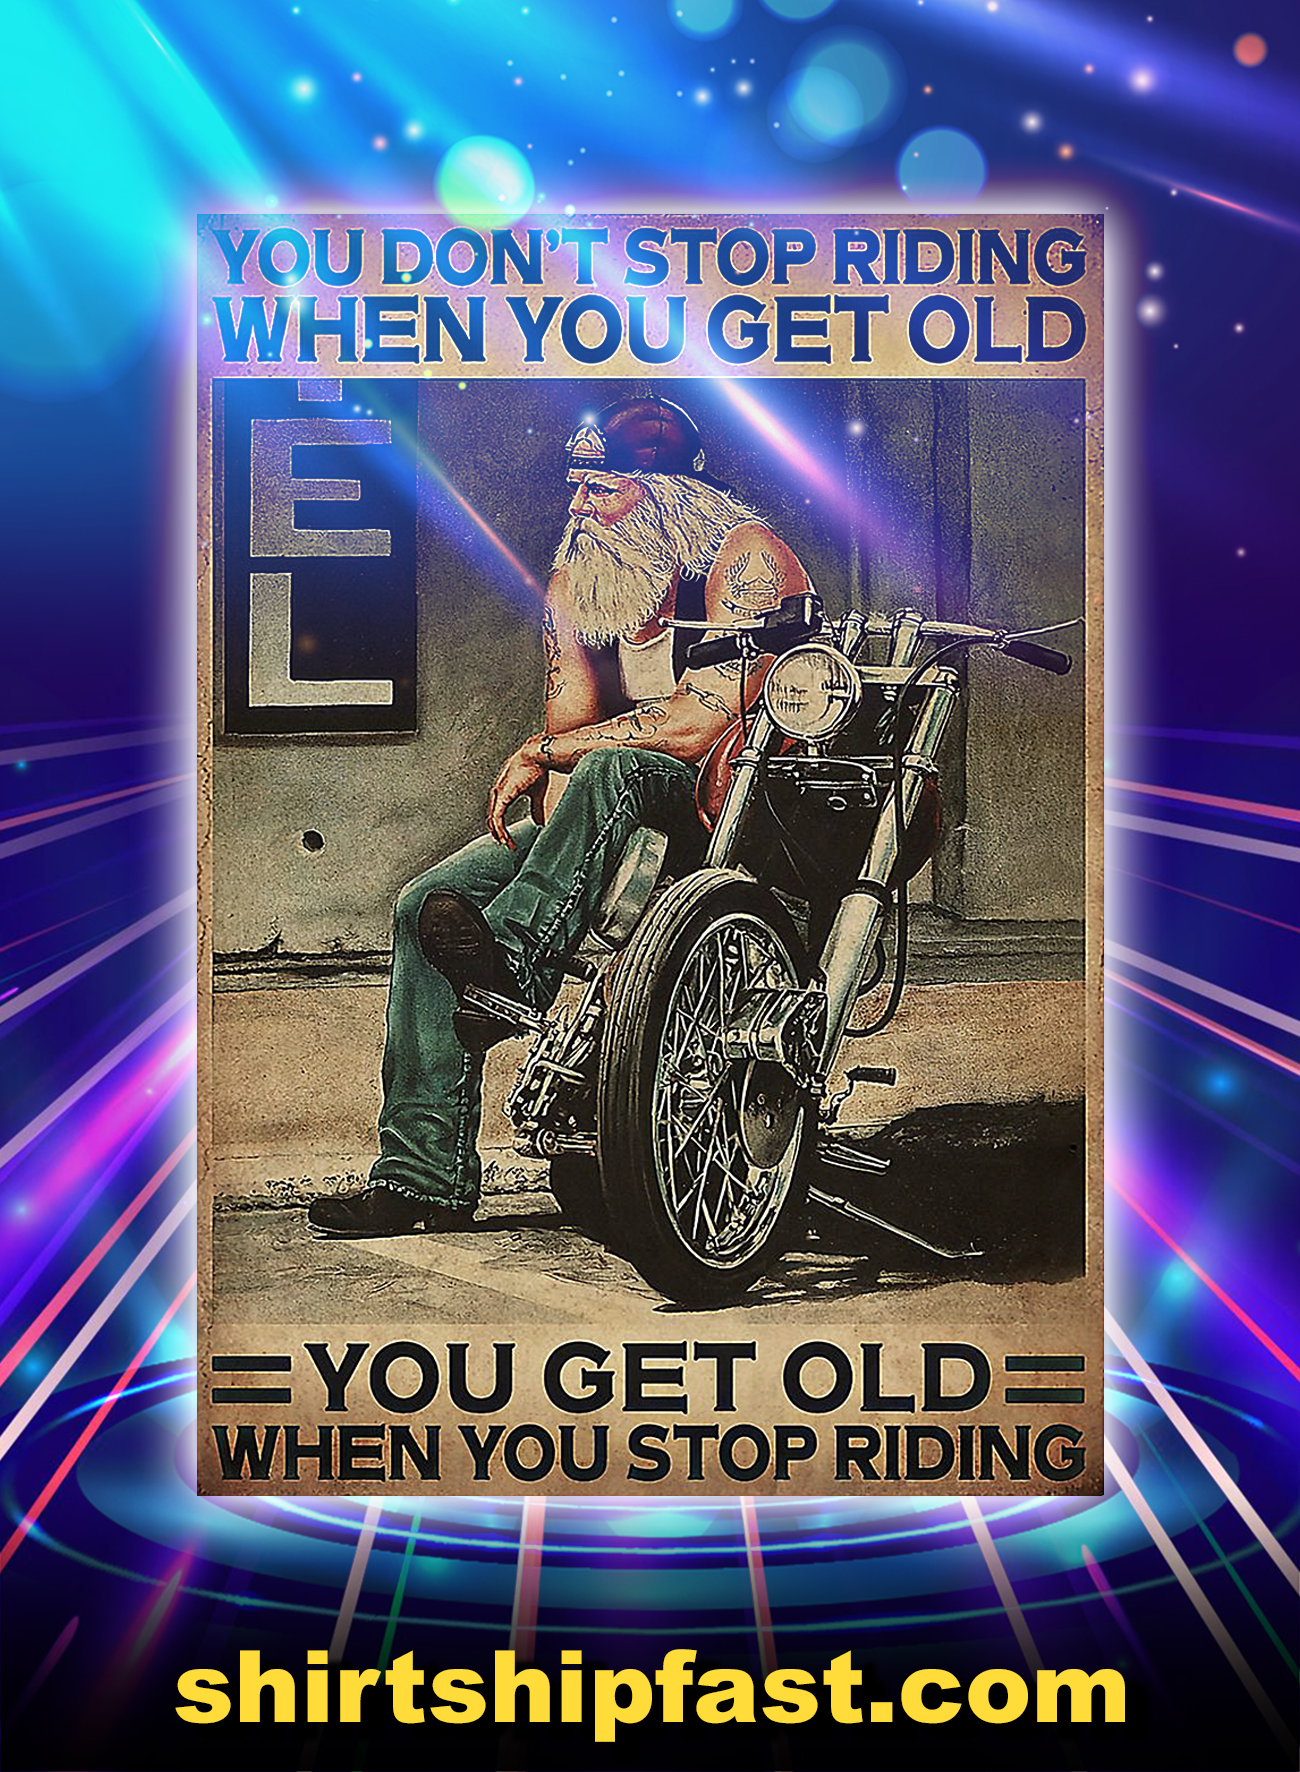 Motorcycle biker you don't stop racing when you get old poster - A4